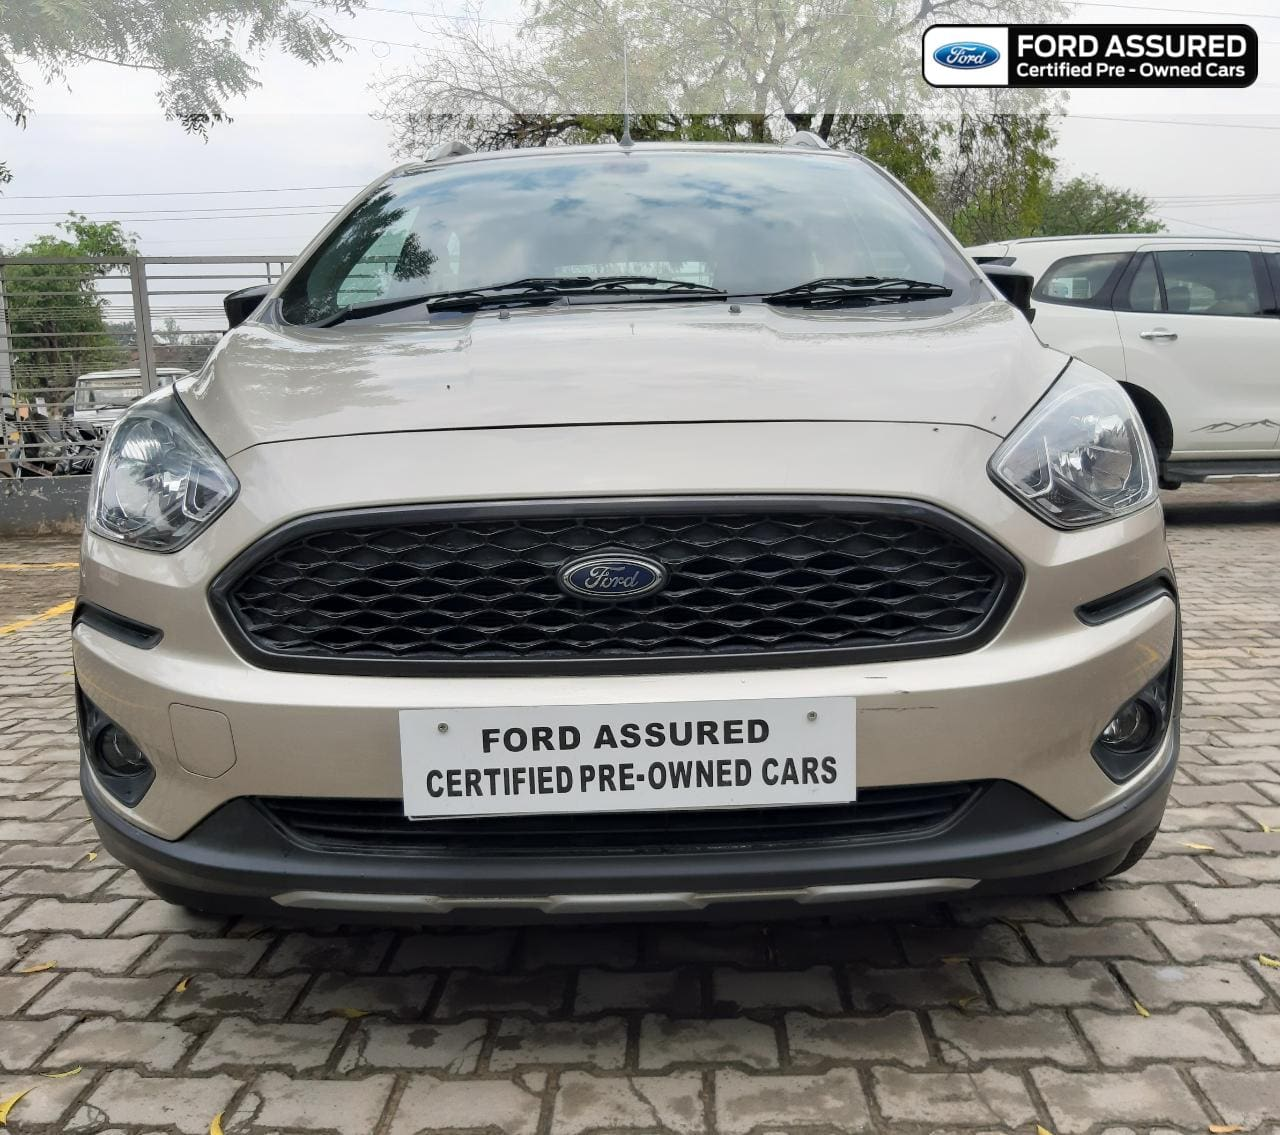 Ford Freestyle Titanium Plus Petrol BSIV